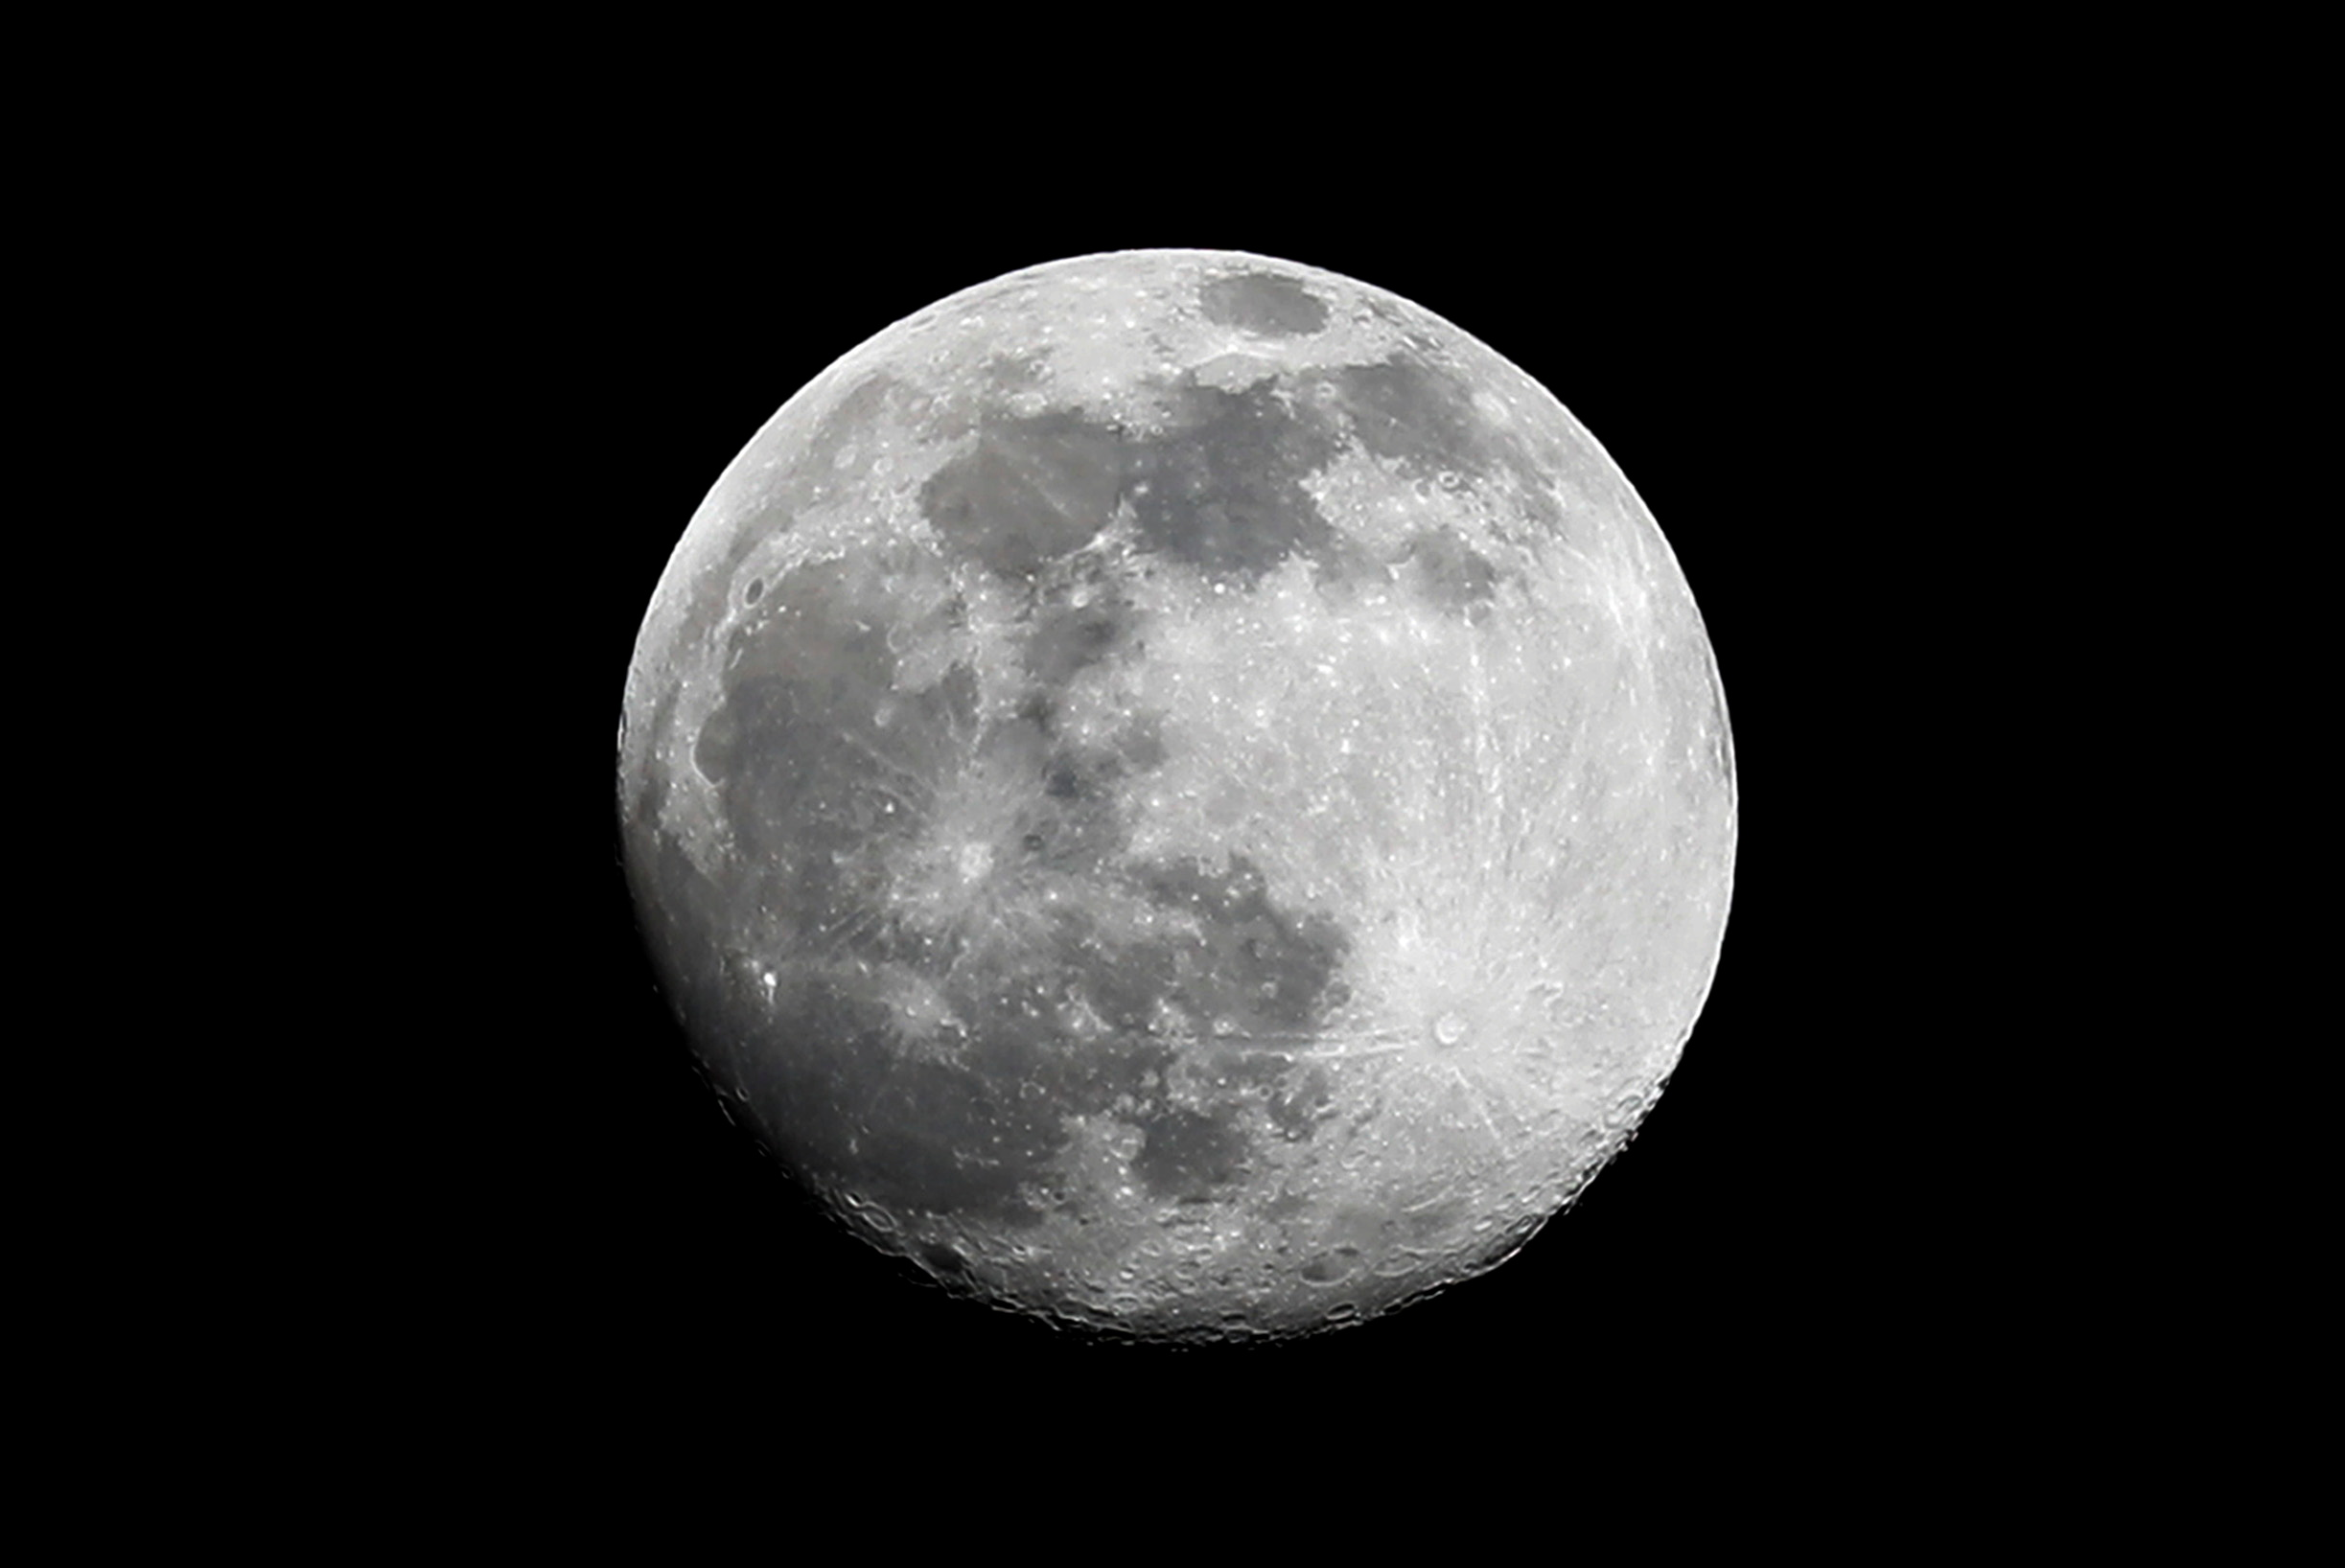 Russia and China want to build an 'international' station on the Moon